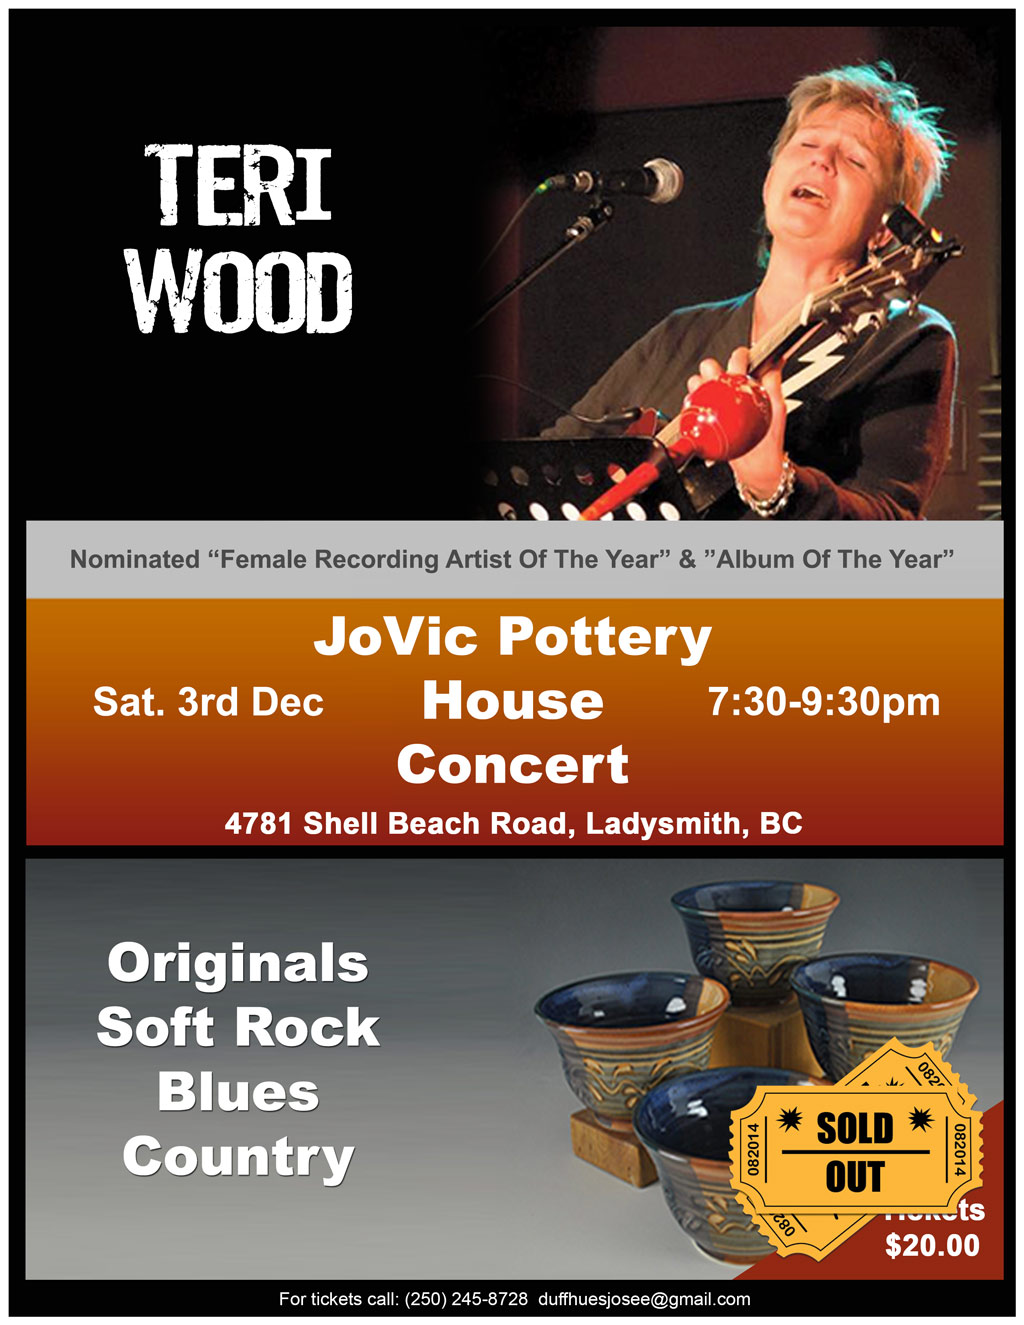 JoVic Pottery House Concert featuring Nominated Recording Artist Teri Wood Sold Out